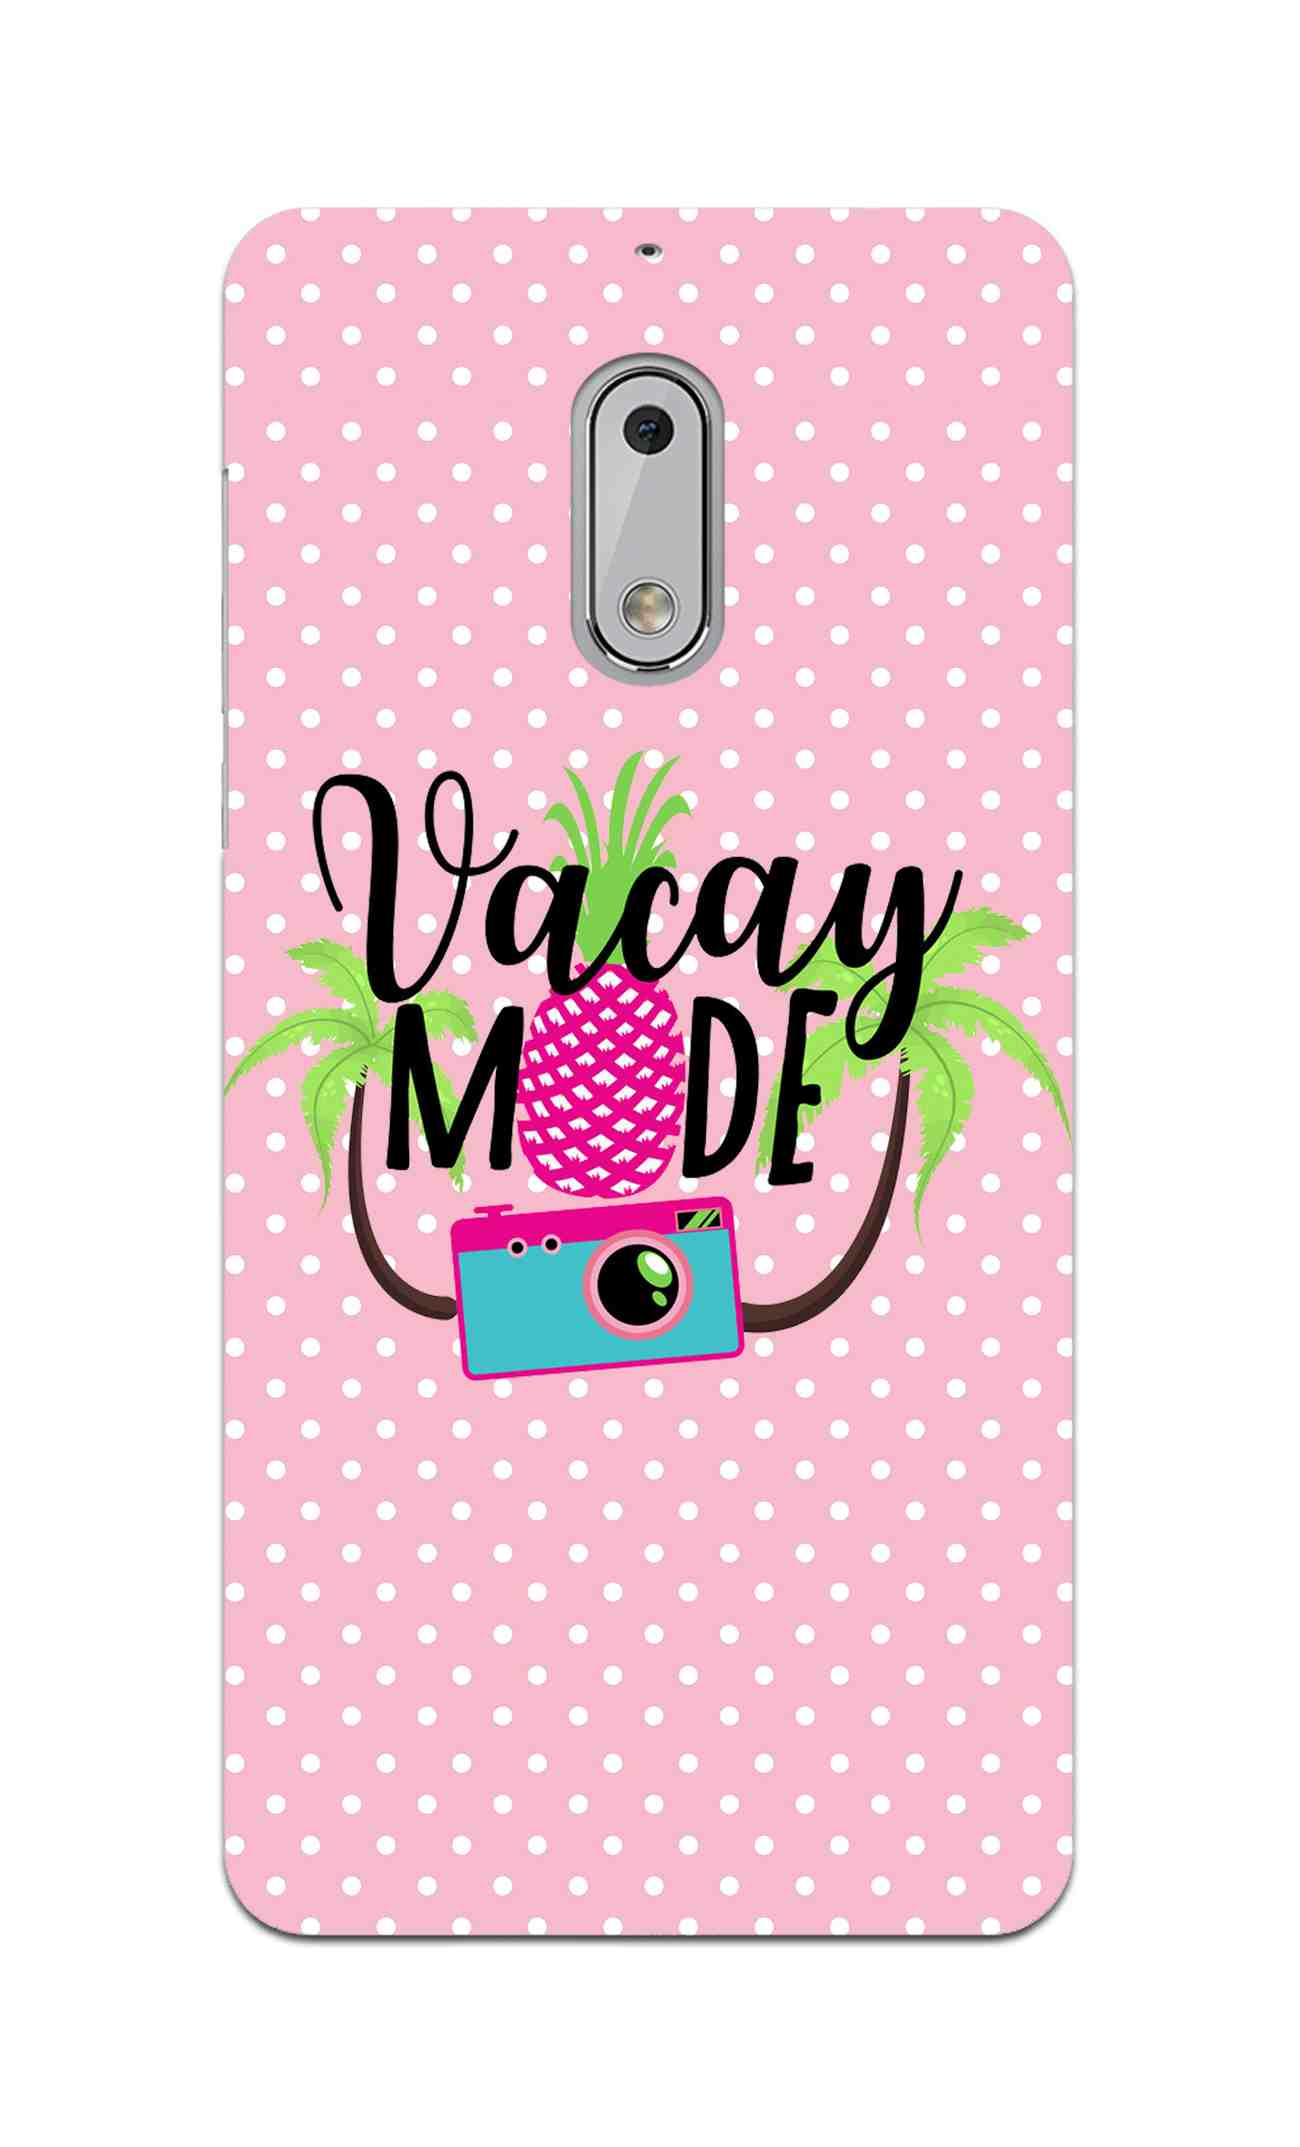 Vacay Mode With Cute White Dots Typography Nokia 6 Mobile Cover Case